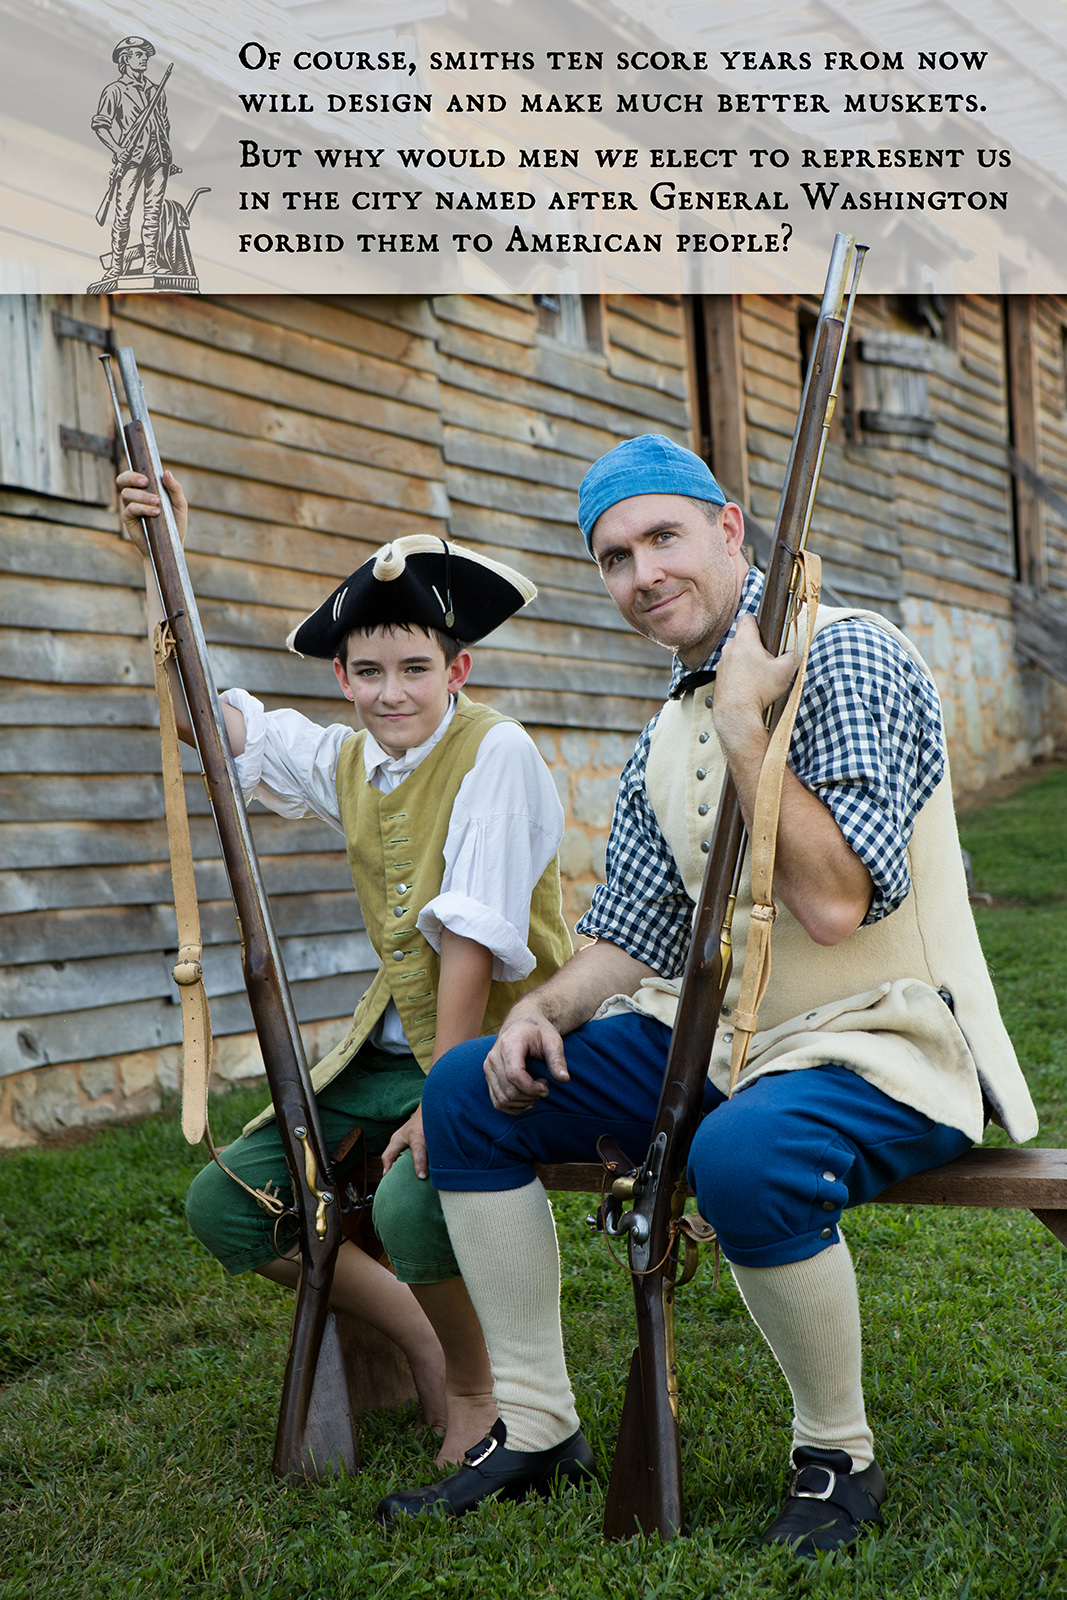 future_muskets_D6A6239web